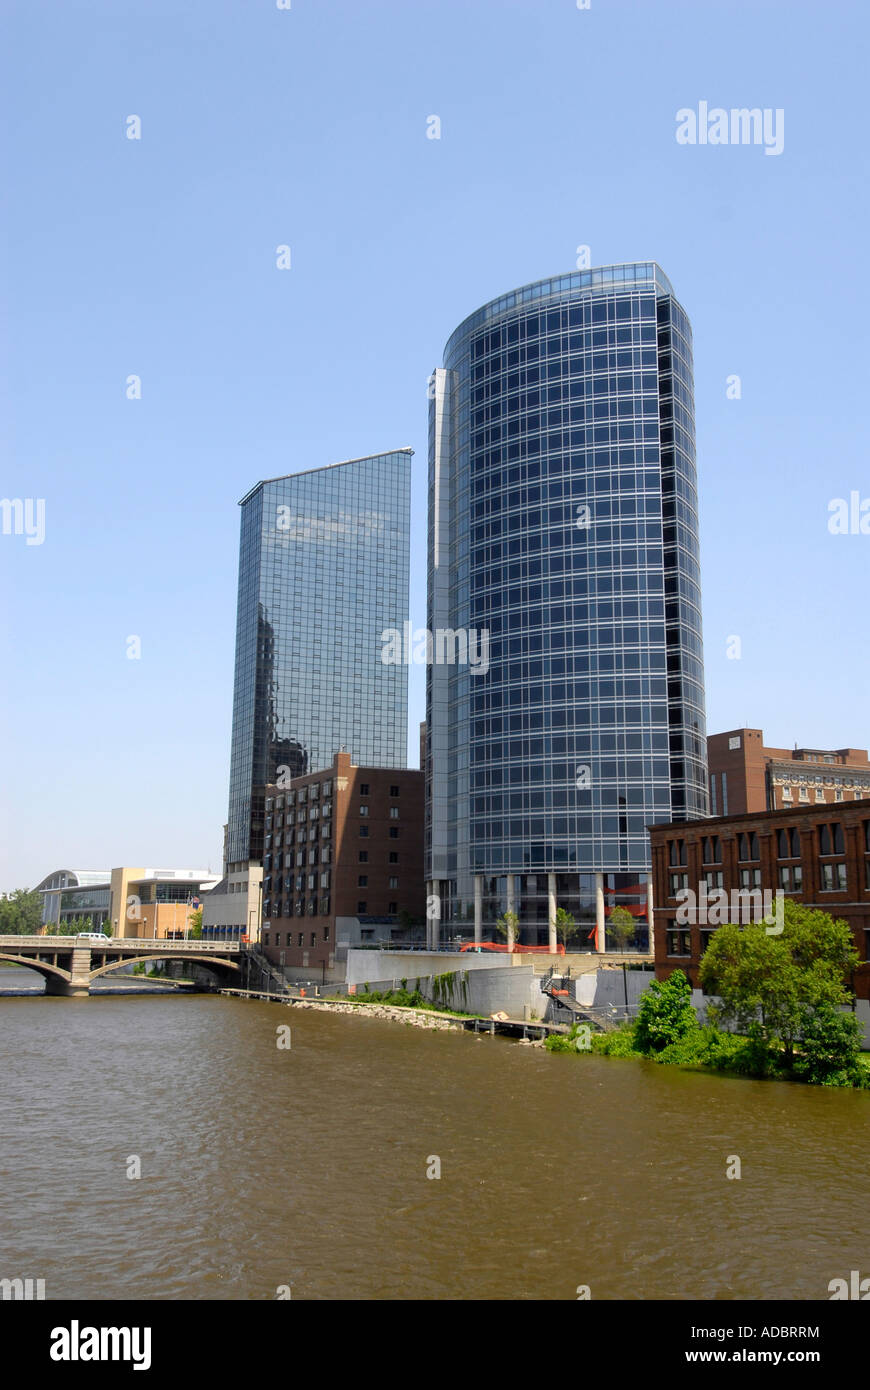 Grand Rapids Hotels >> Skyline Including The Amway Hotel In Downtown Grand Rapids